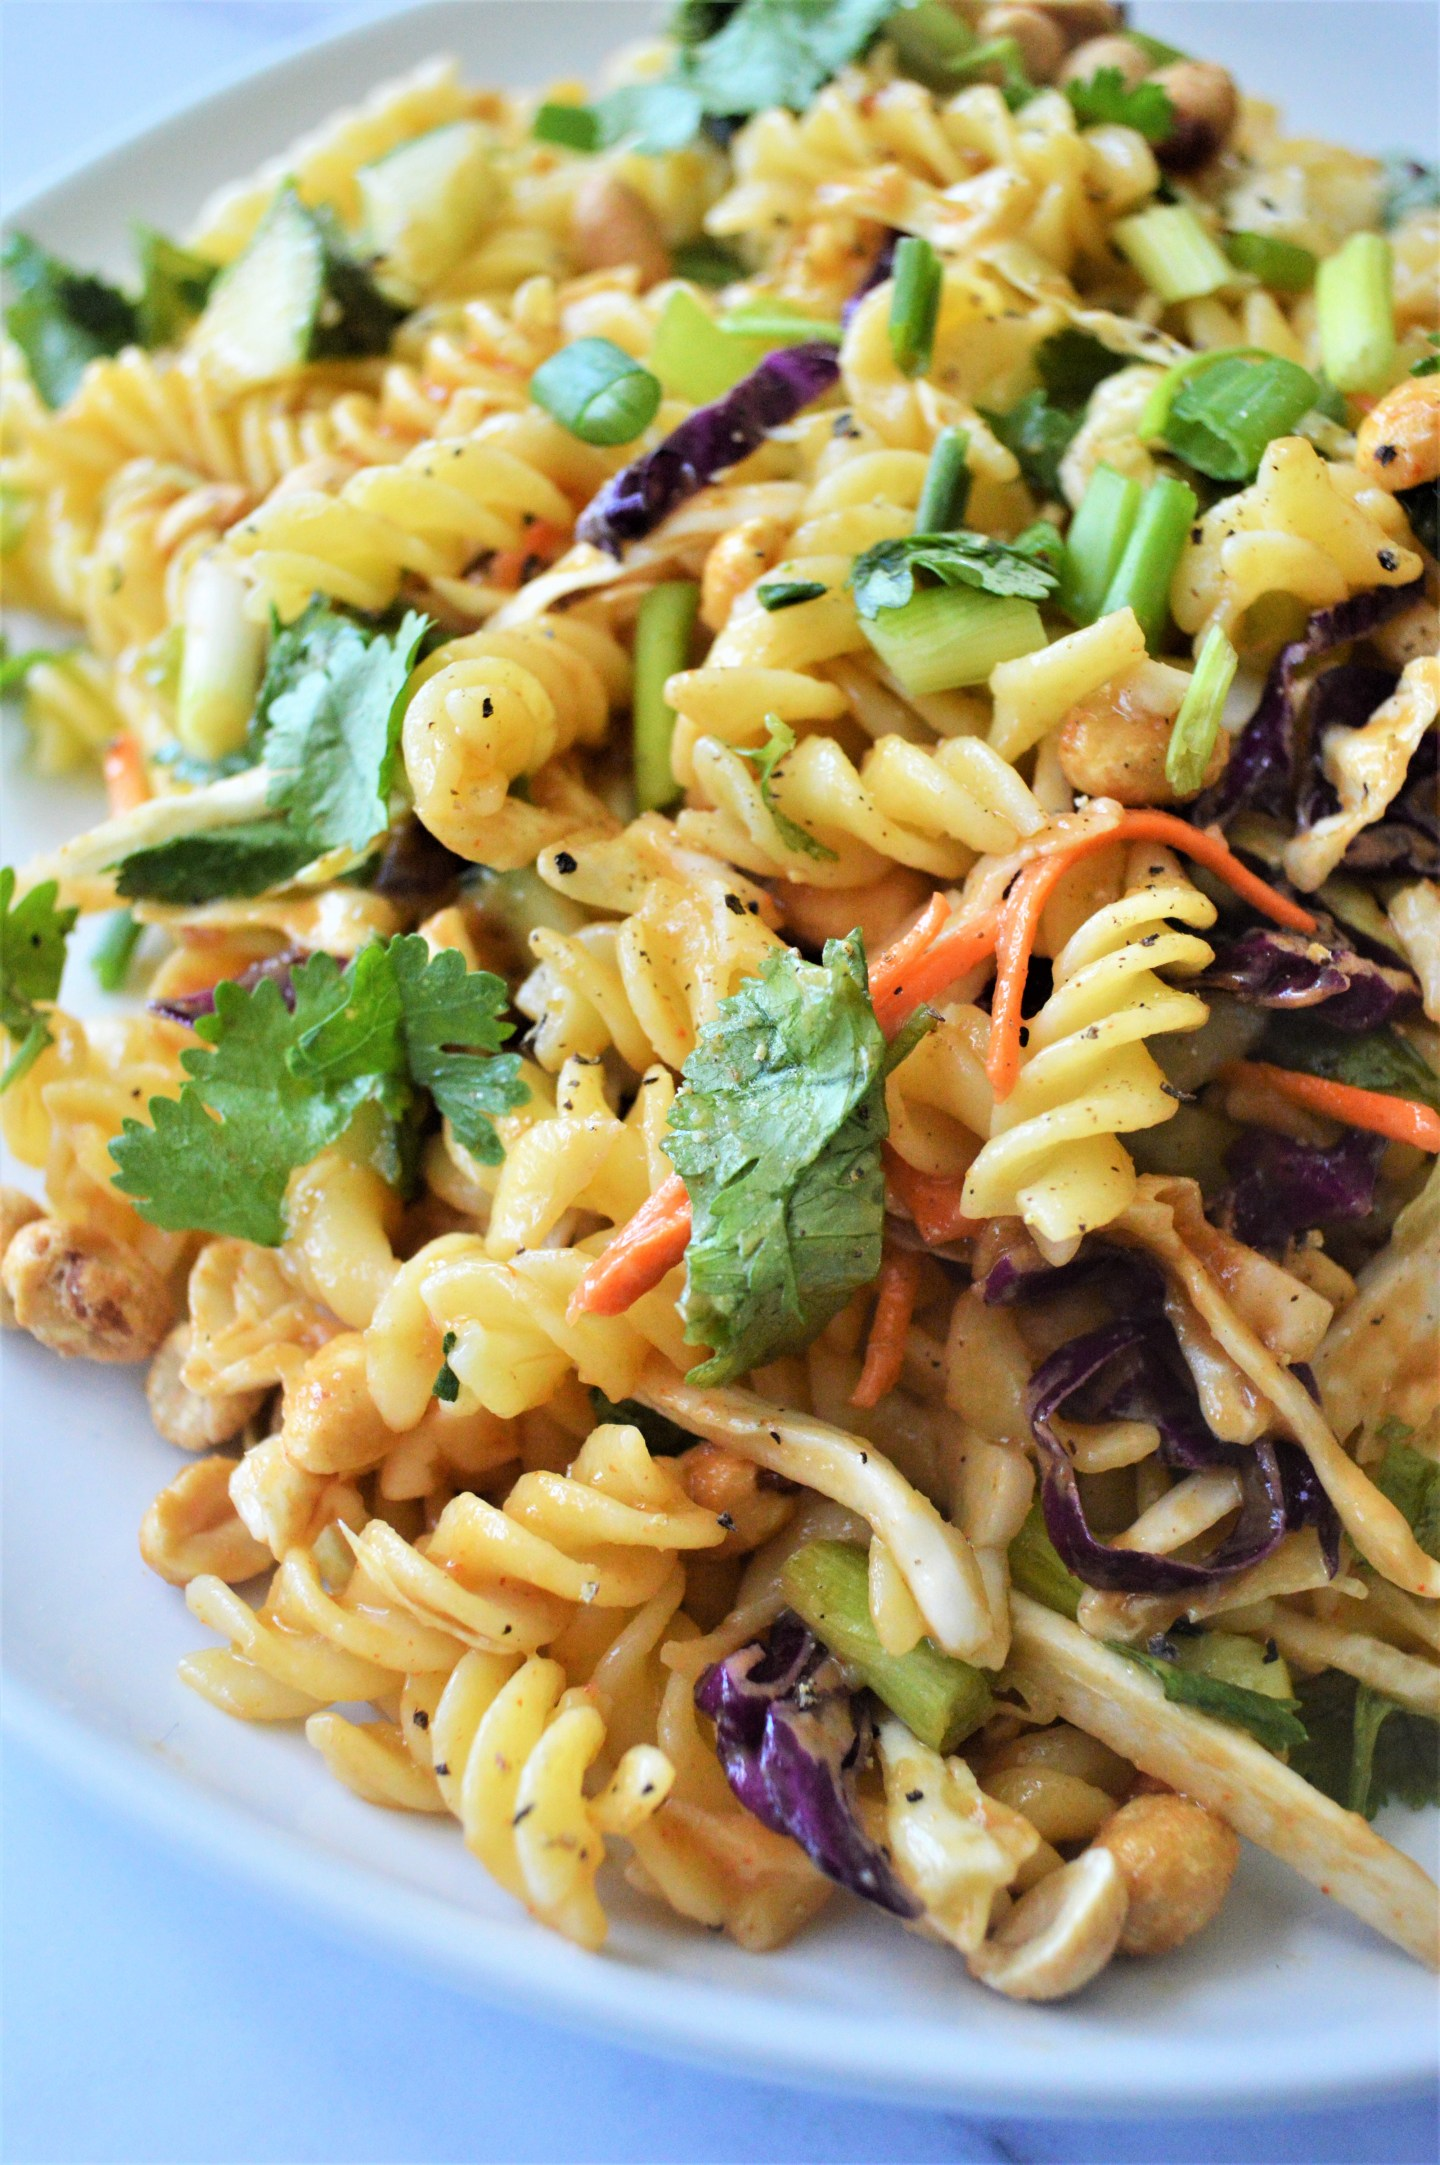 Thai Noodle Salad by Who Needs A Cape? - WEEKEND POTLUCK 439